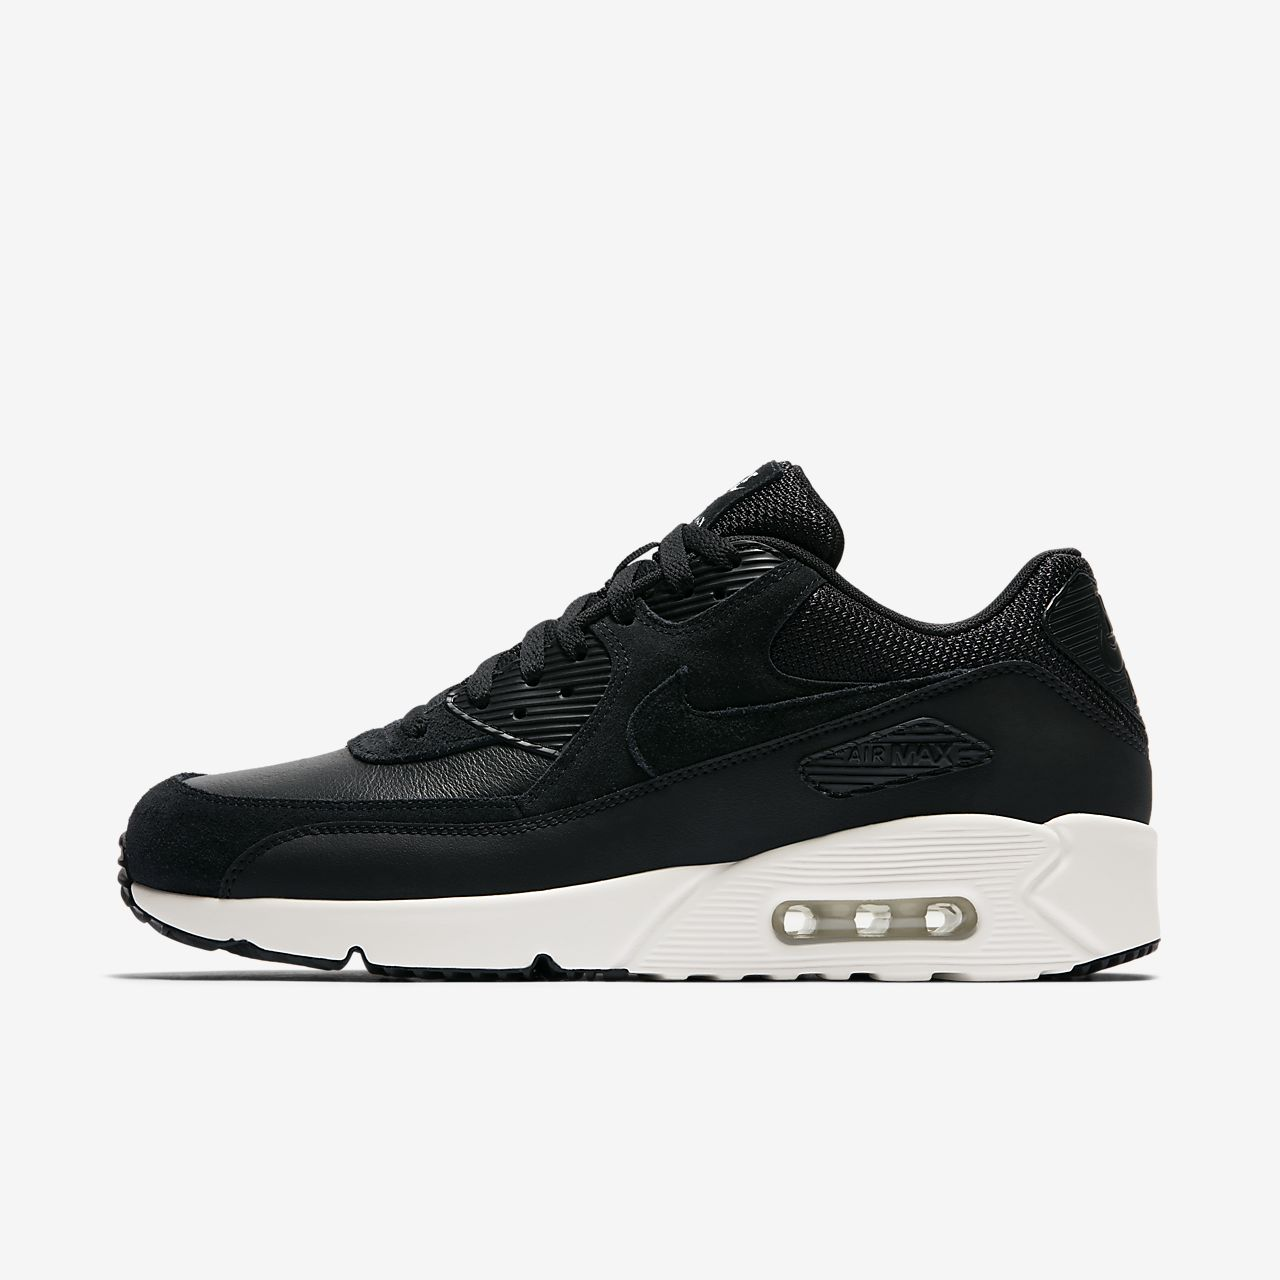 nike men's air max 1 ltr premium running shoe nz